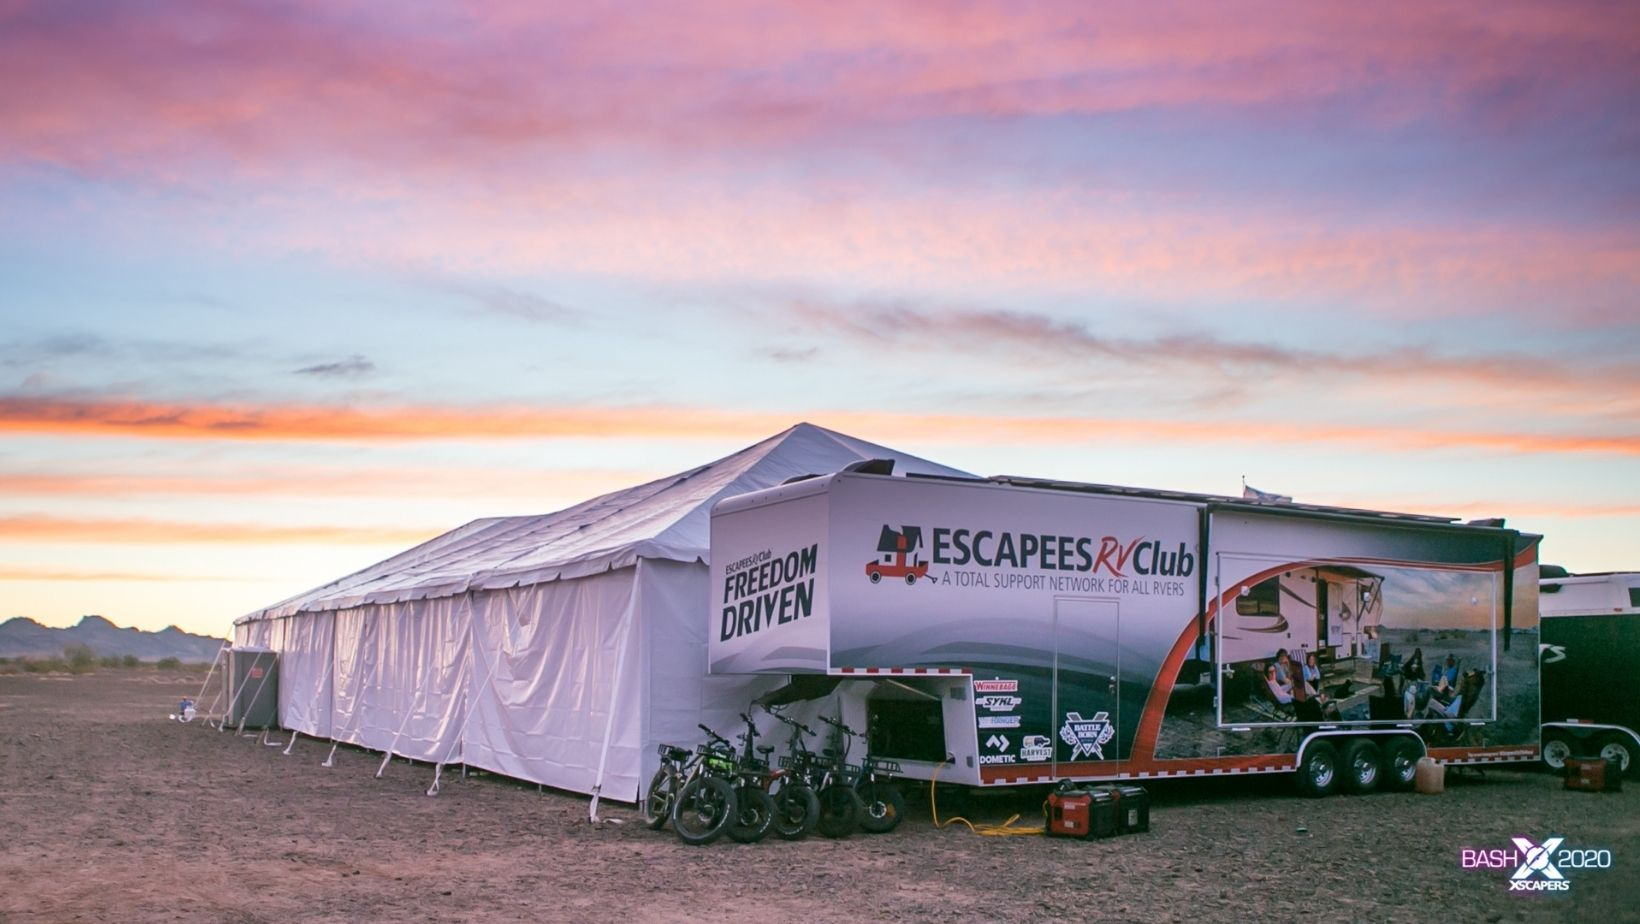 View of the entire Escapees event trailer with tent deployed and e-bikes parked nearby.